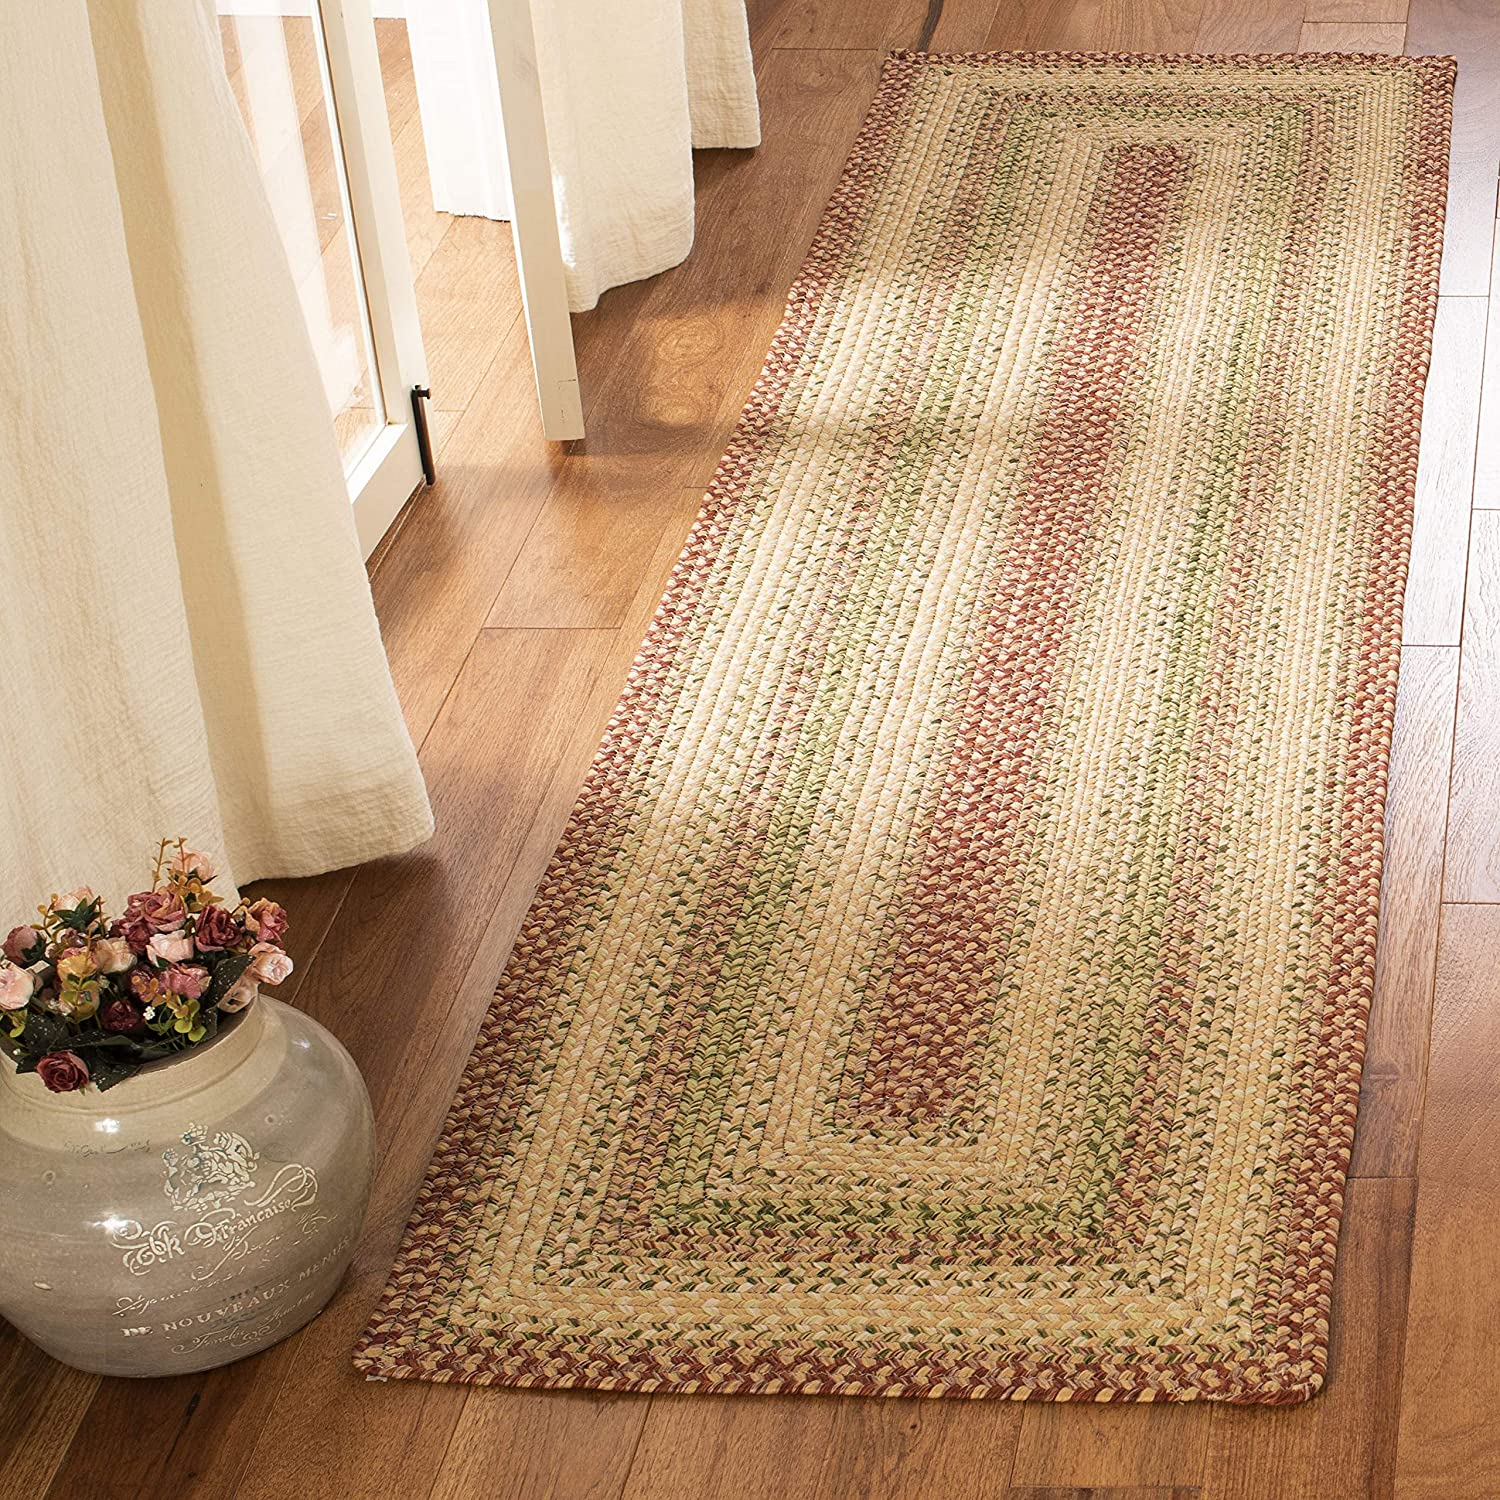 Safavieh Braided Collection Brd303a Handmade Country Cottage Reversible Runner 2 3 X 12 Rust Multi Furniture Decor Amazon Com